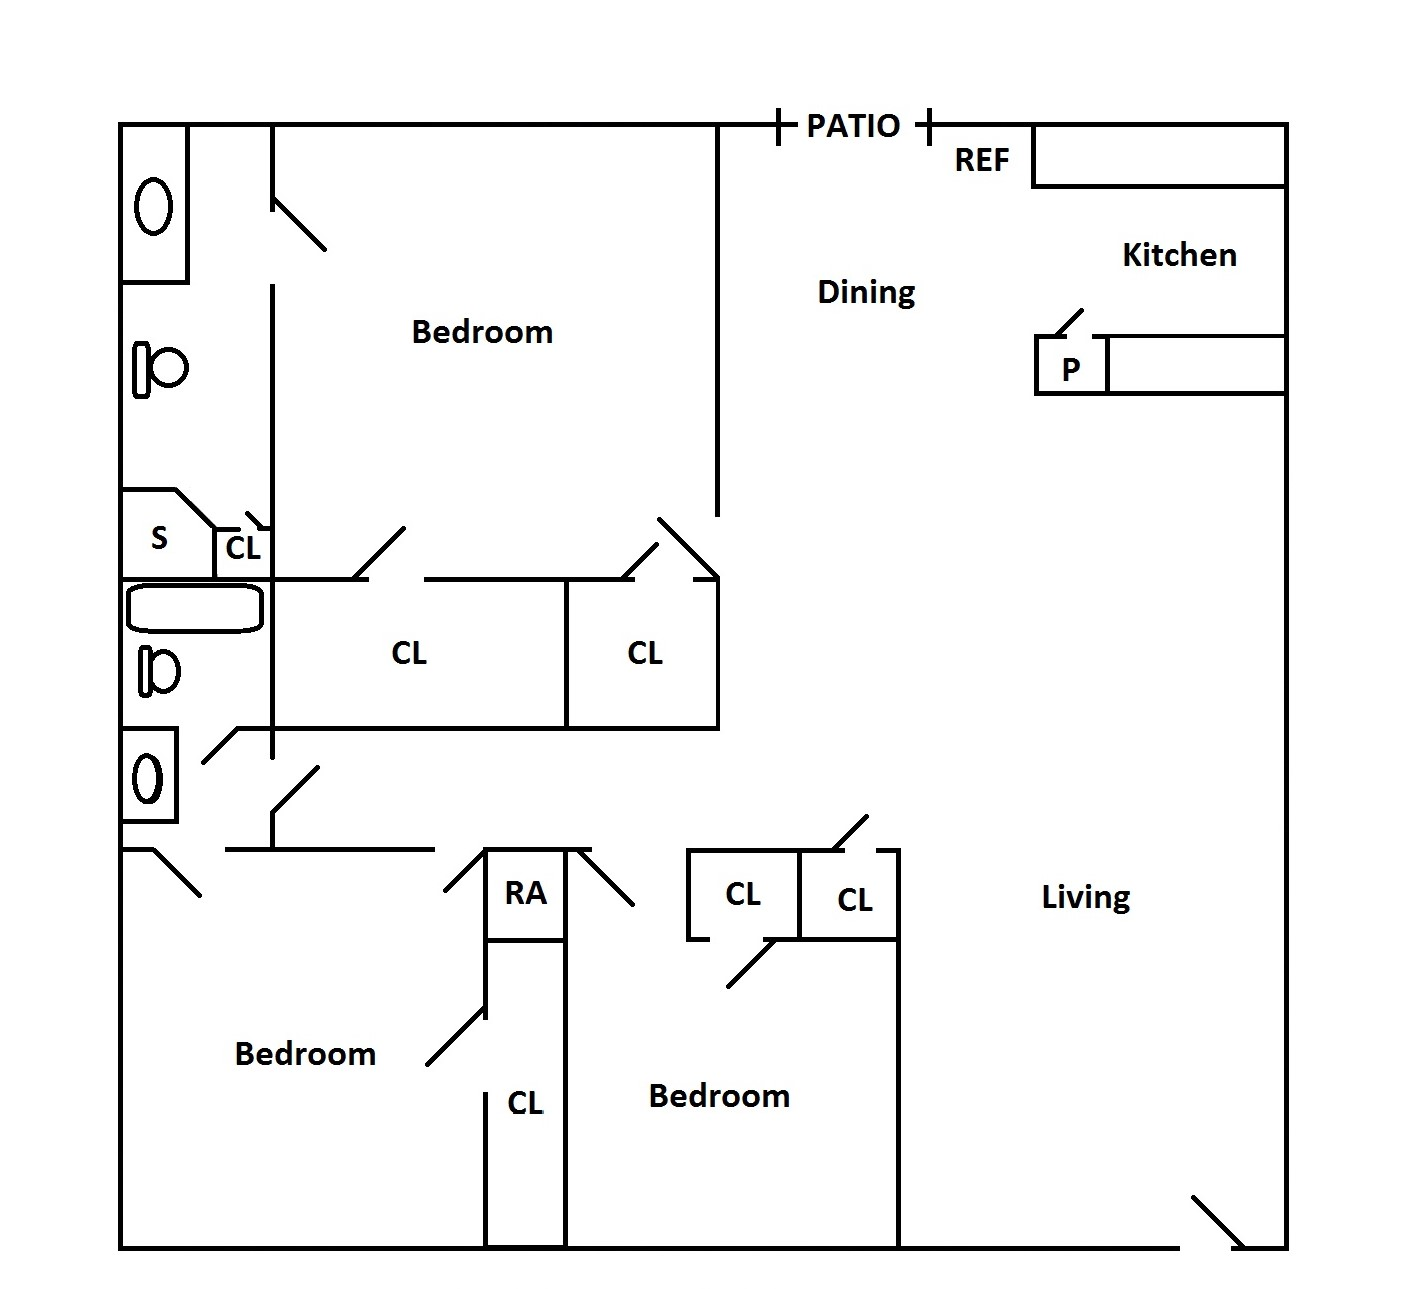 Floorplan - 3 Bedroom image